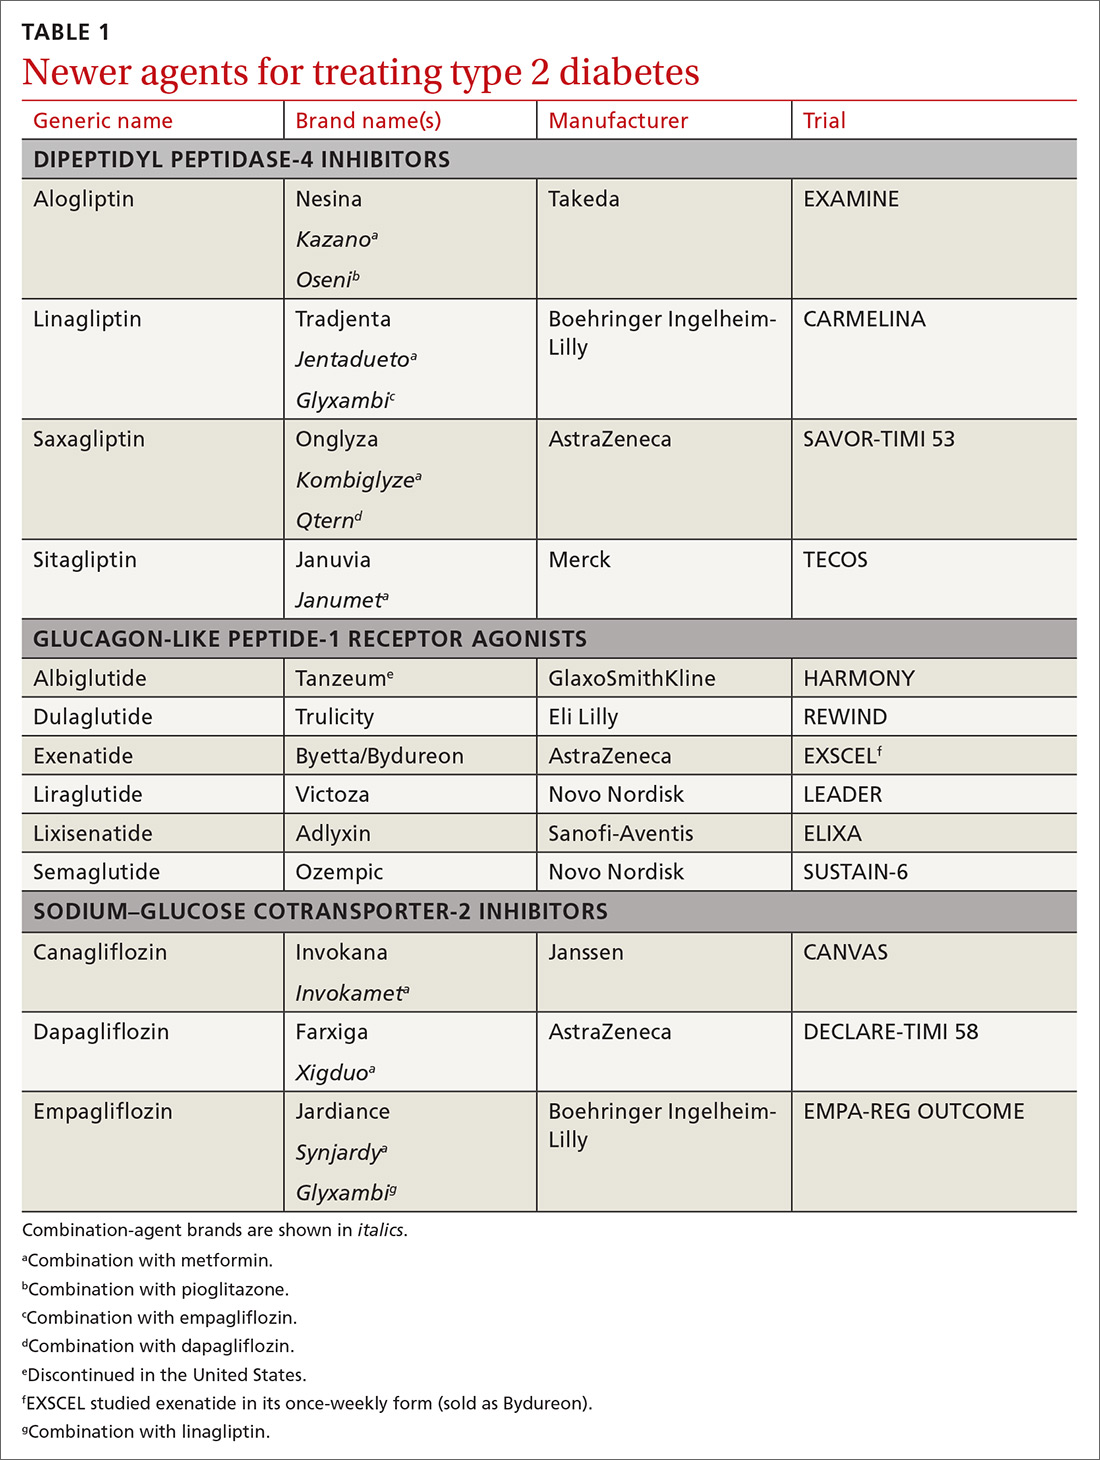 Newer agents for treating type 2 diabetes